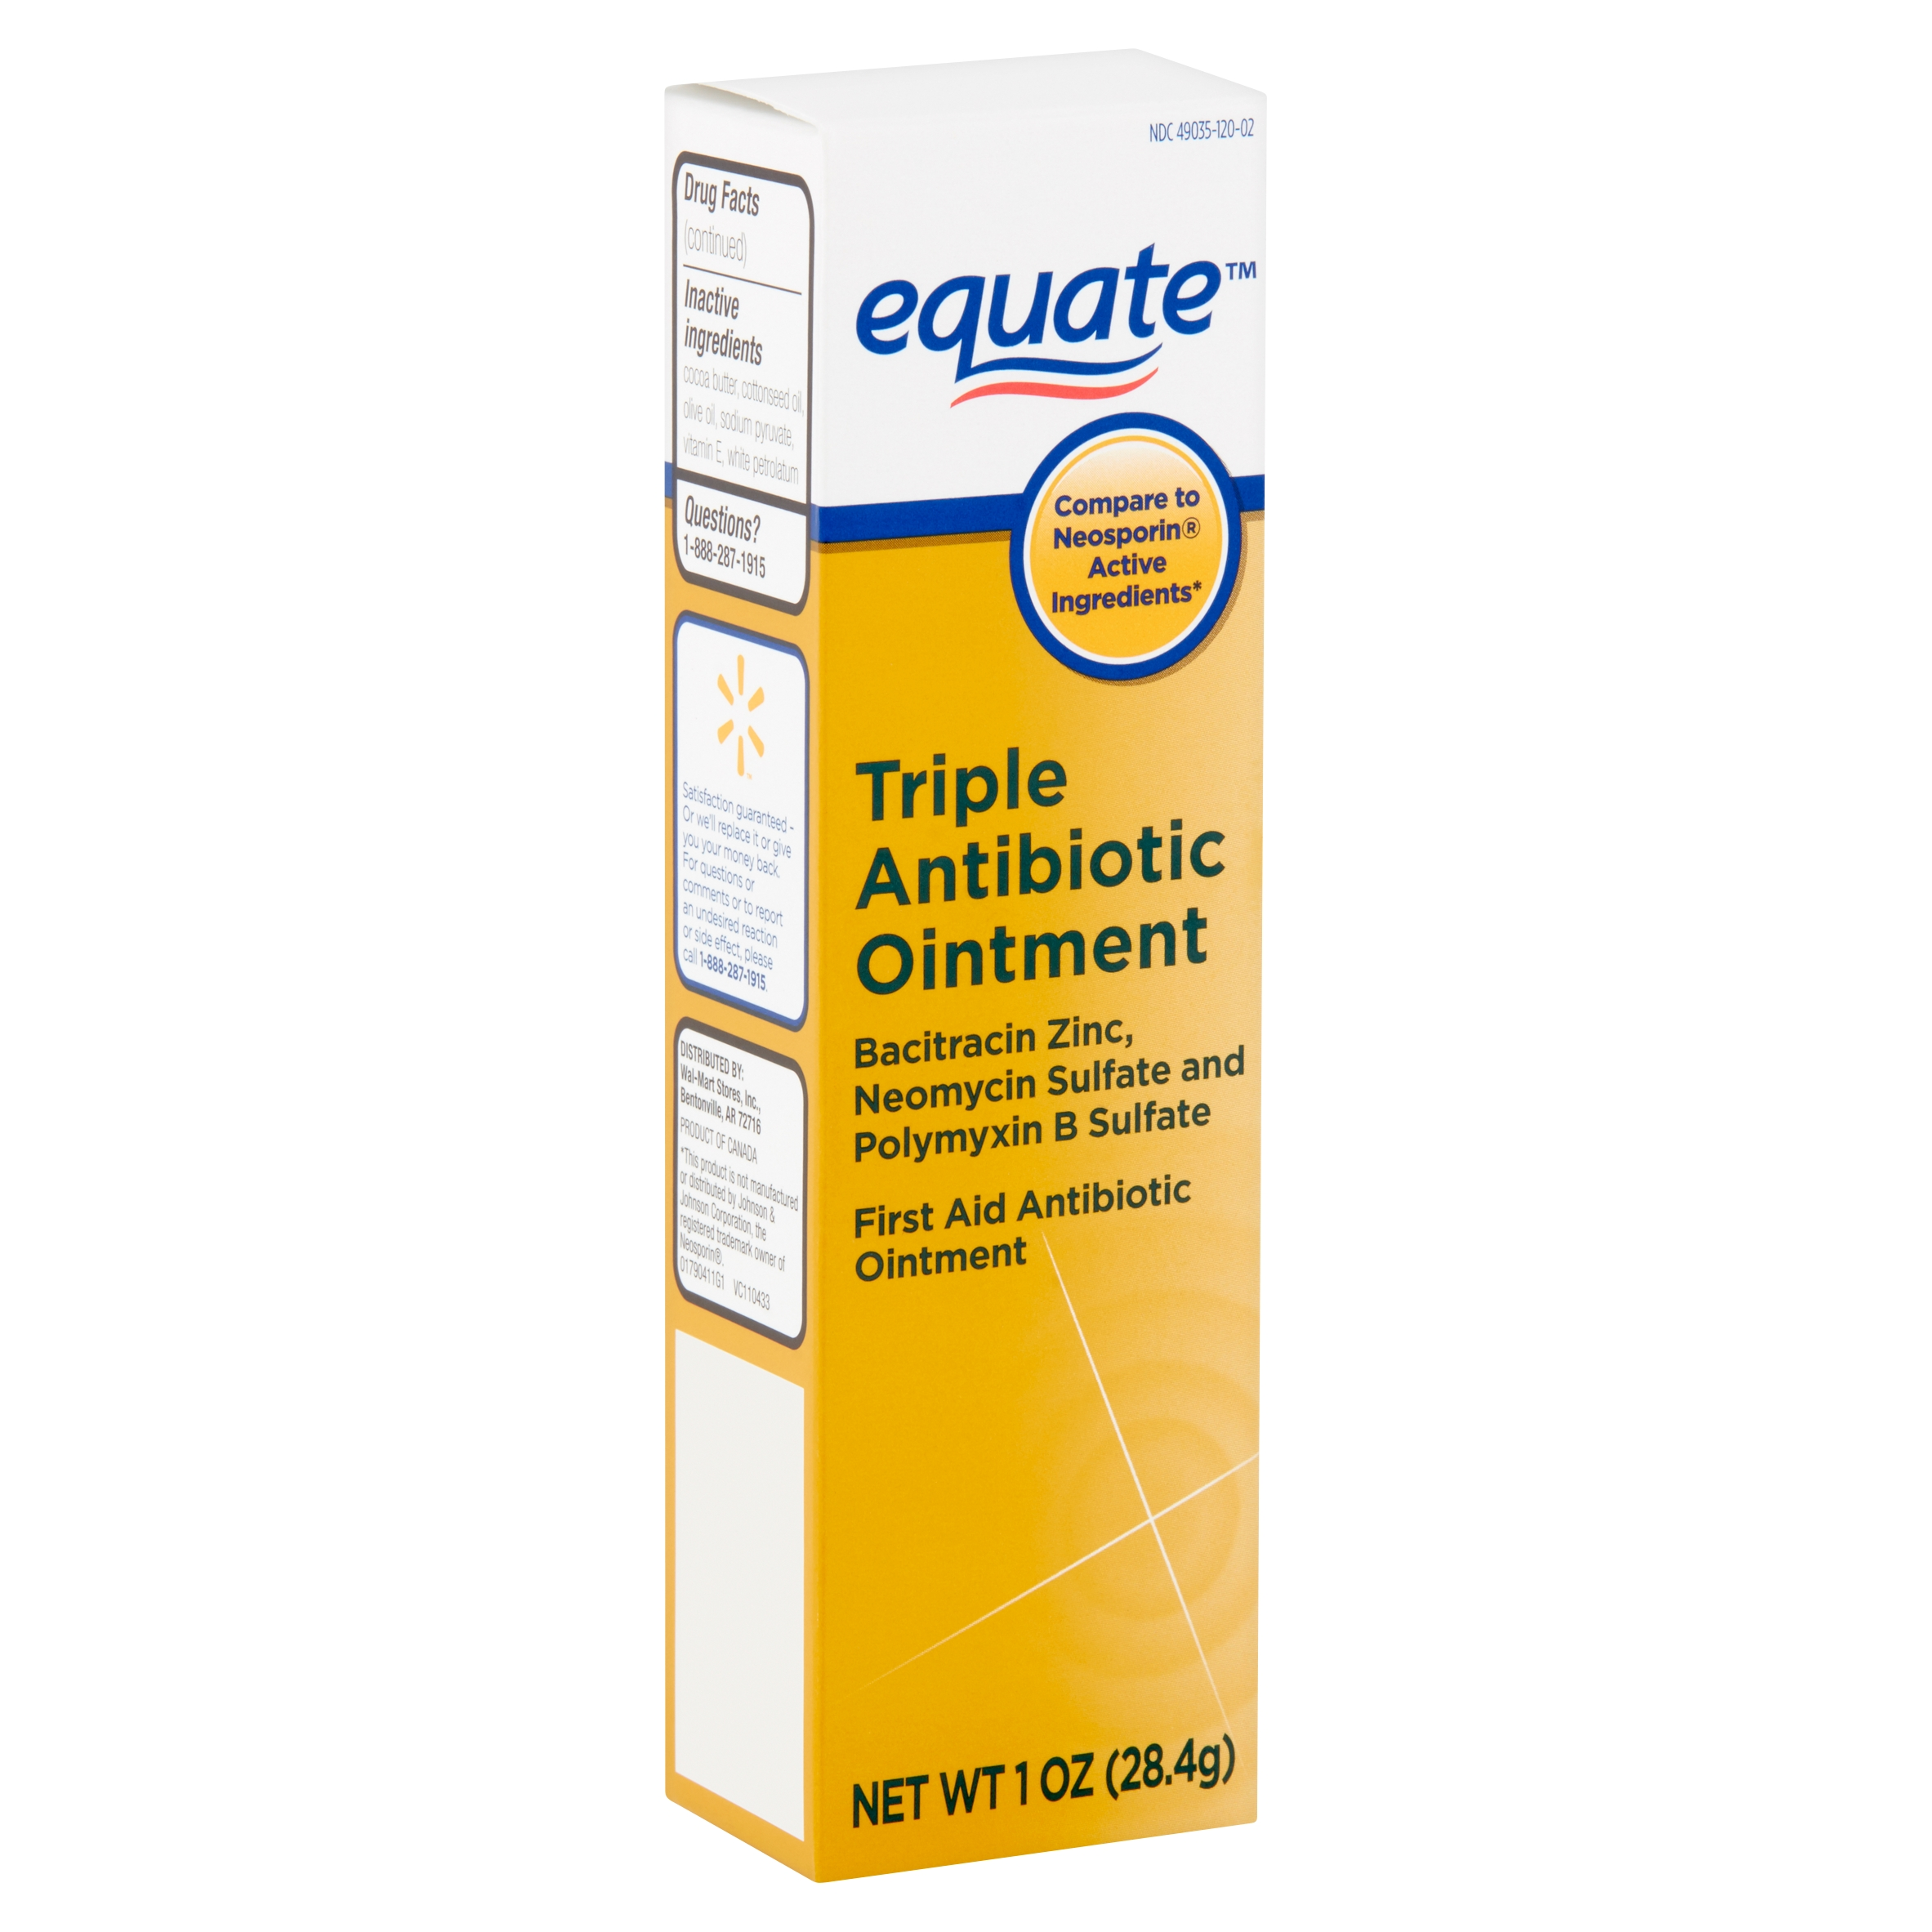 Equate Triple First Aid Antibiotic Ointment, 1 oz